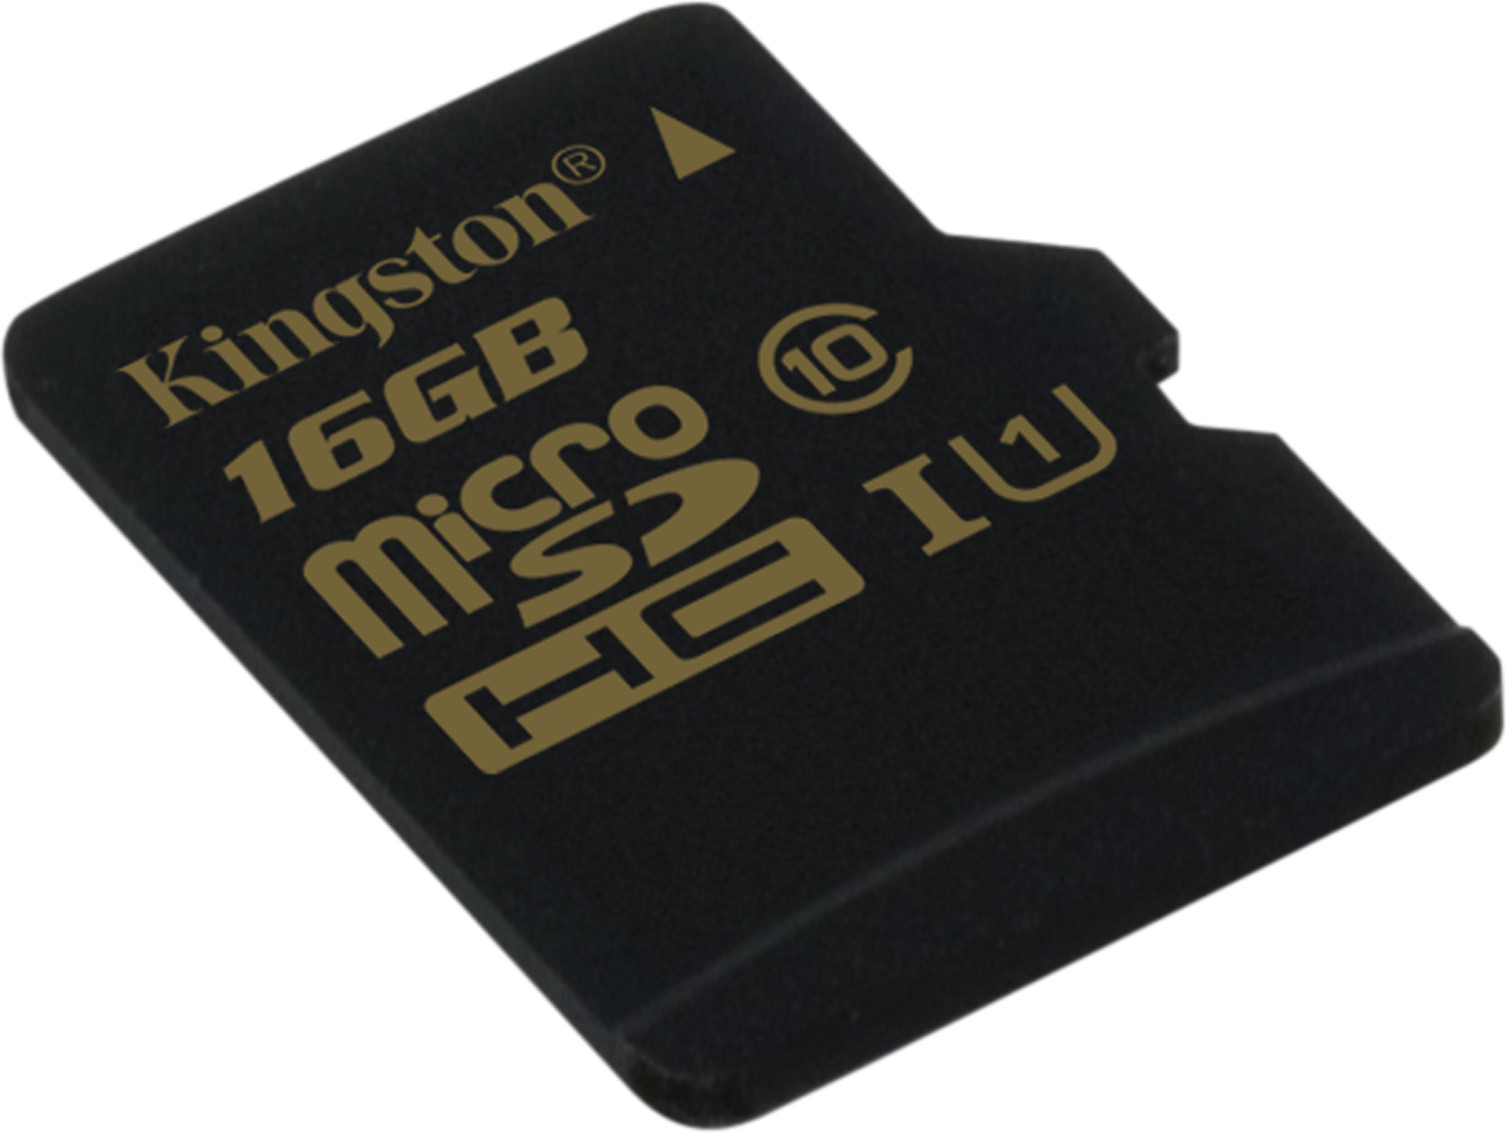 News Posts Matching Sdxc Techpowerup Team Micro Sd Uhs 1 16gb Usb Card Reader 45mb S Compatible With Microsdhc And Microsdxc Devices Its Fast I Speed Allows Users To Capture Photos Hd Videos Without Interruption